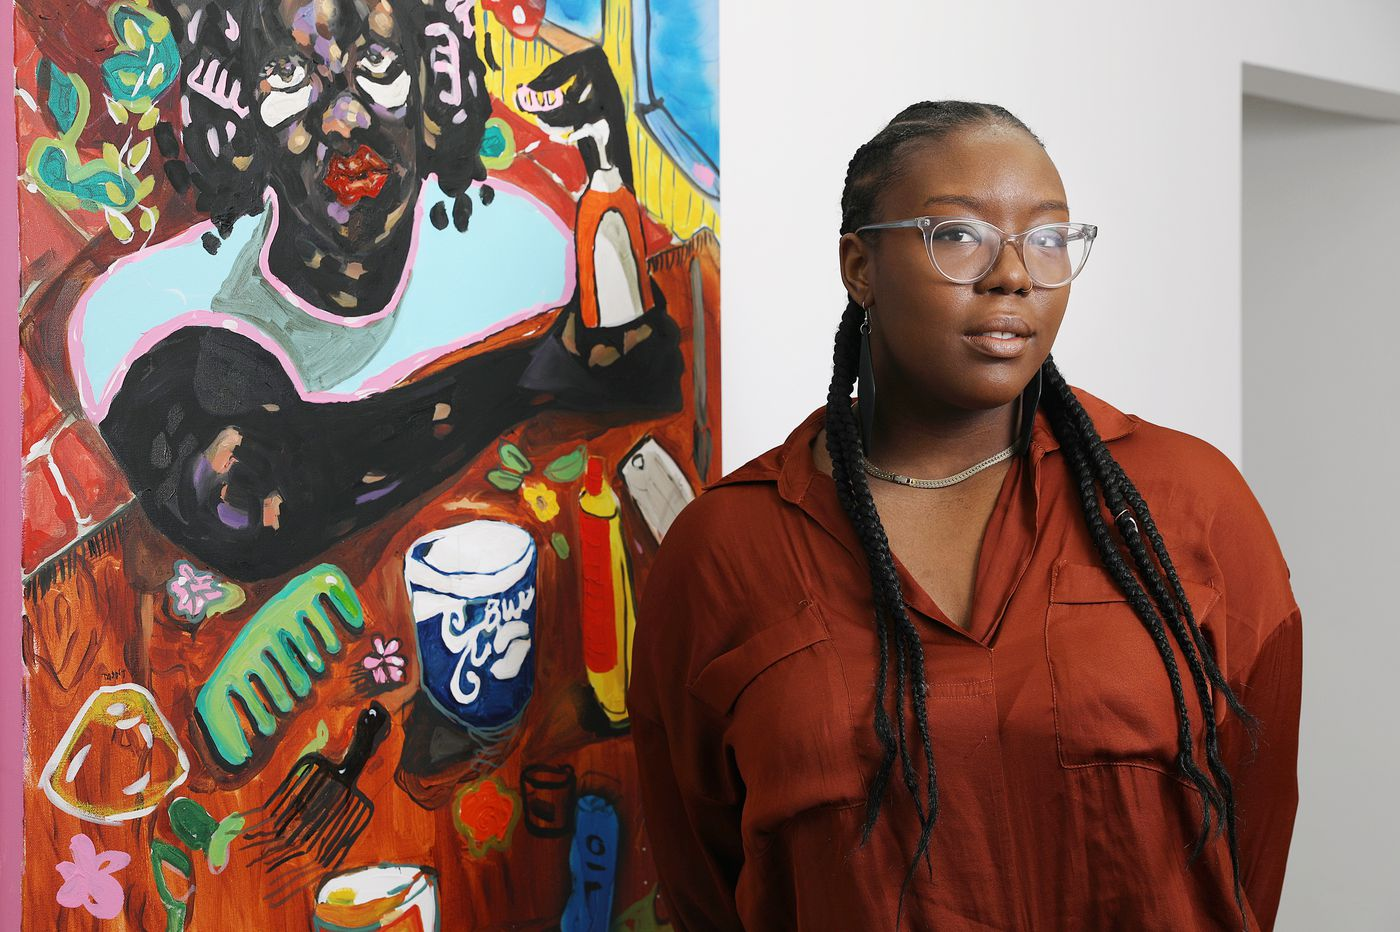 This rising-star just opened her first solo art show in Philly. Then came the coronavirus closures.